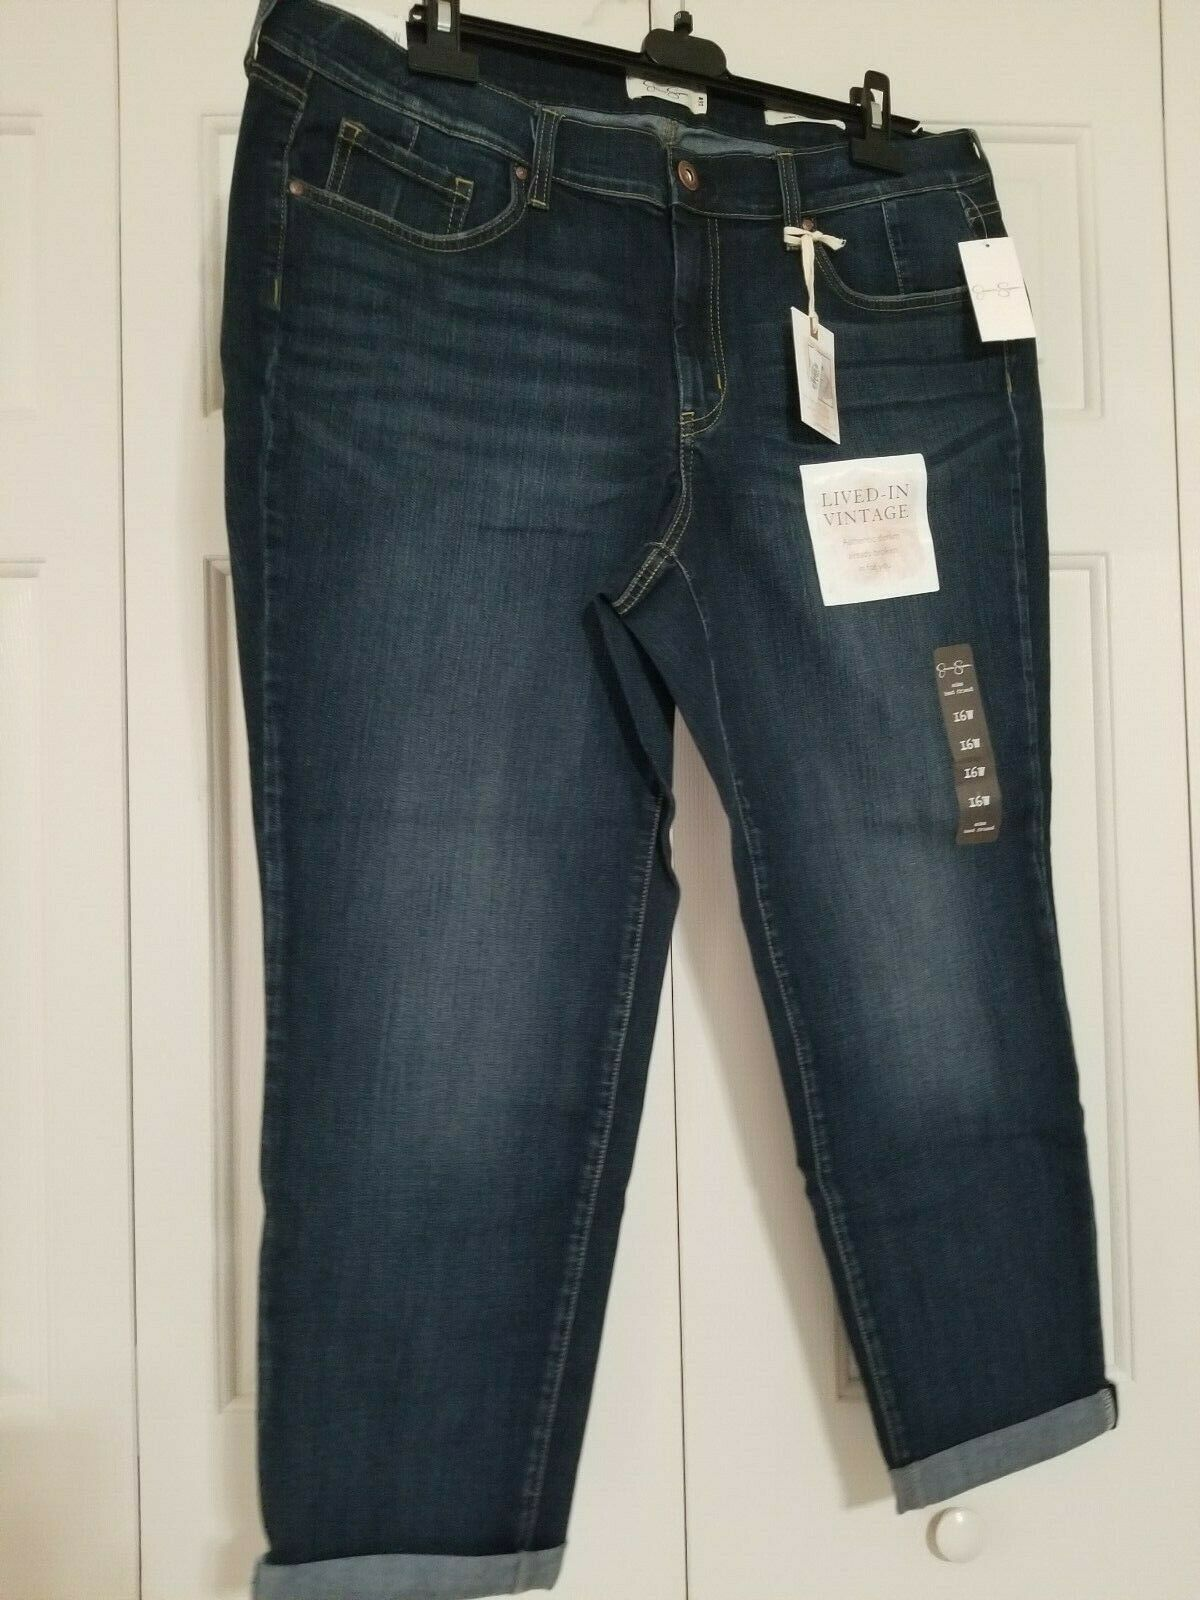 Dia & Co Jessica Simpson Mika Best Friend Jeans Size 16W NWT